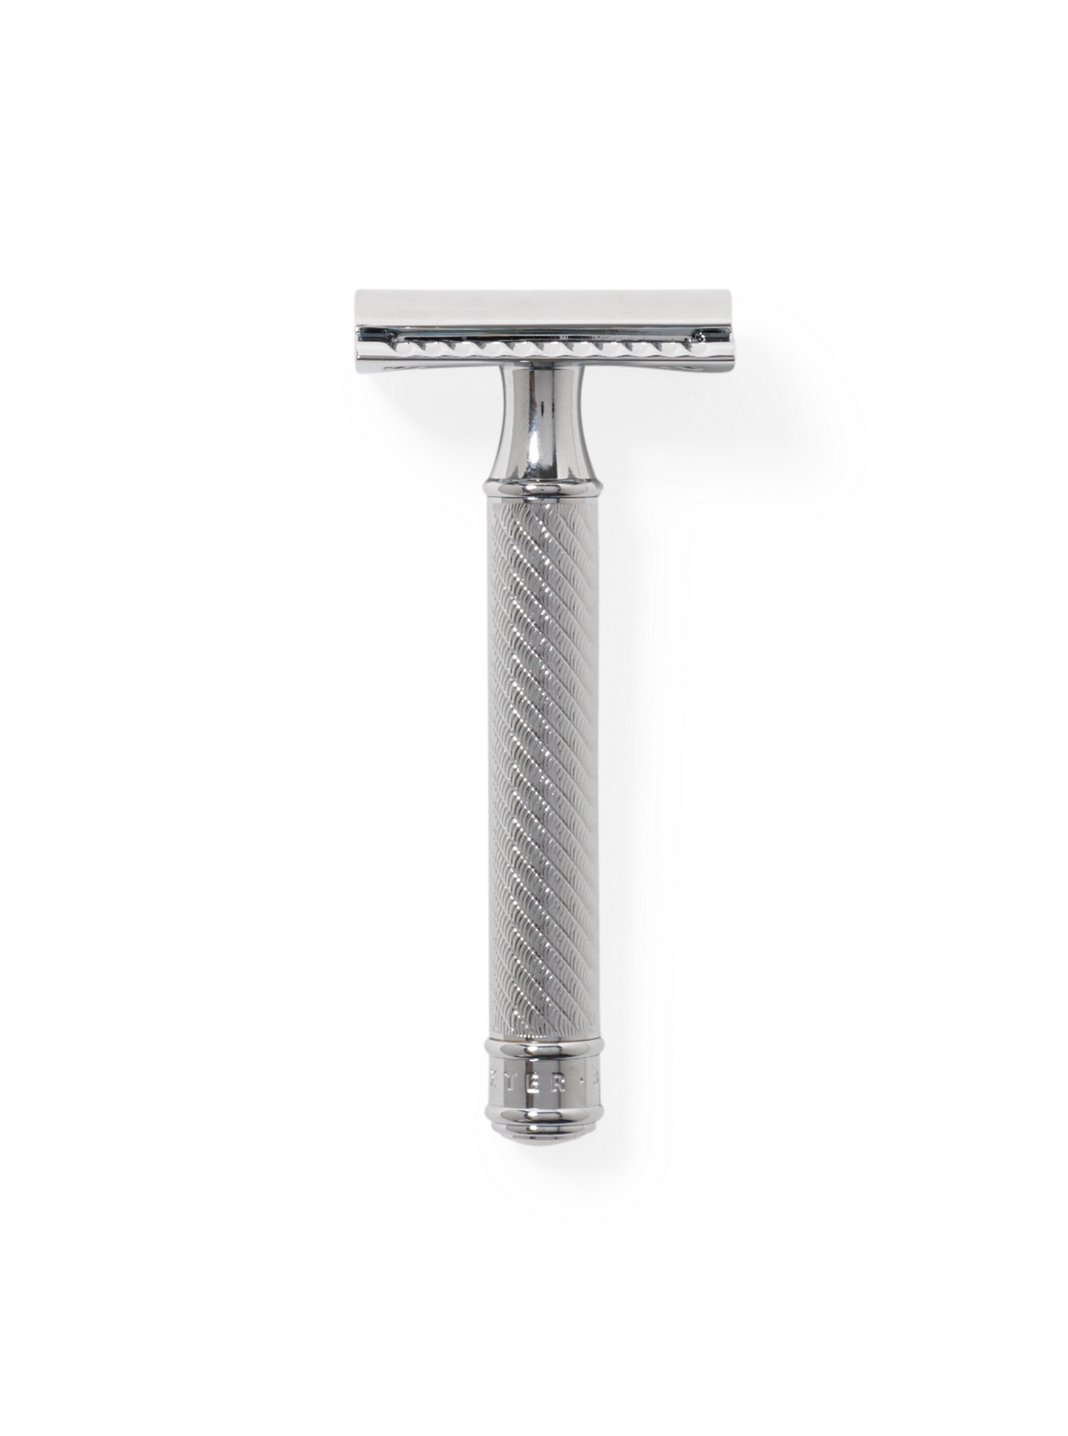 Baxter Safety Razor